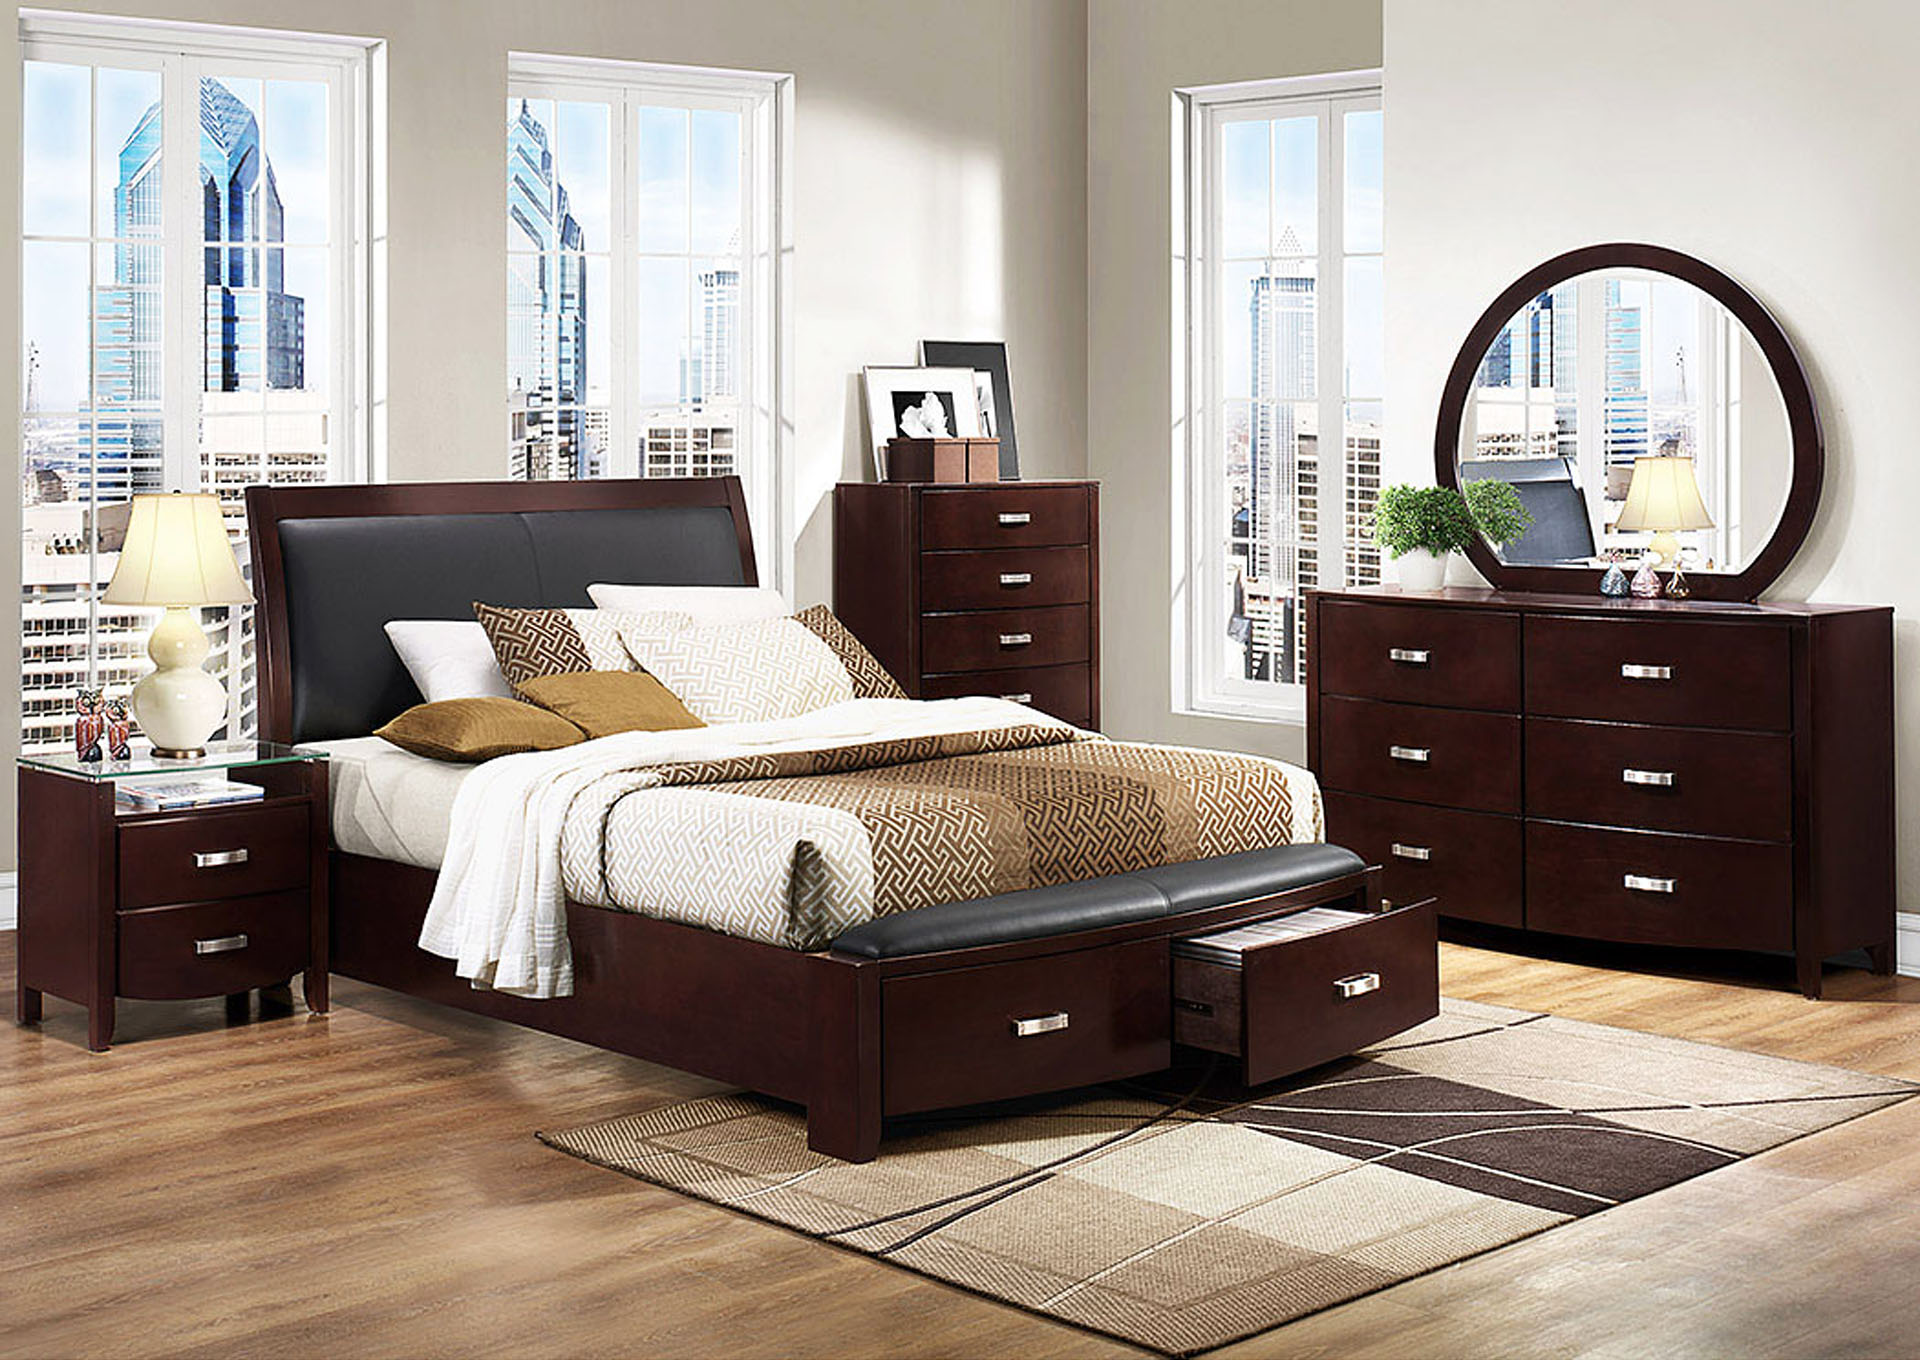 Lyric Dark Espresso Queen Bed w/ Front Bed Storages,Homelegance